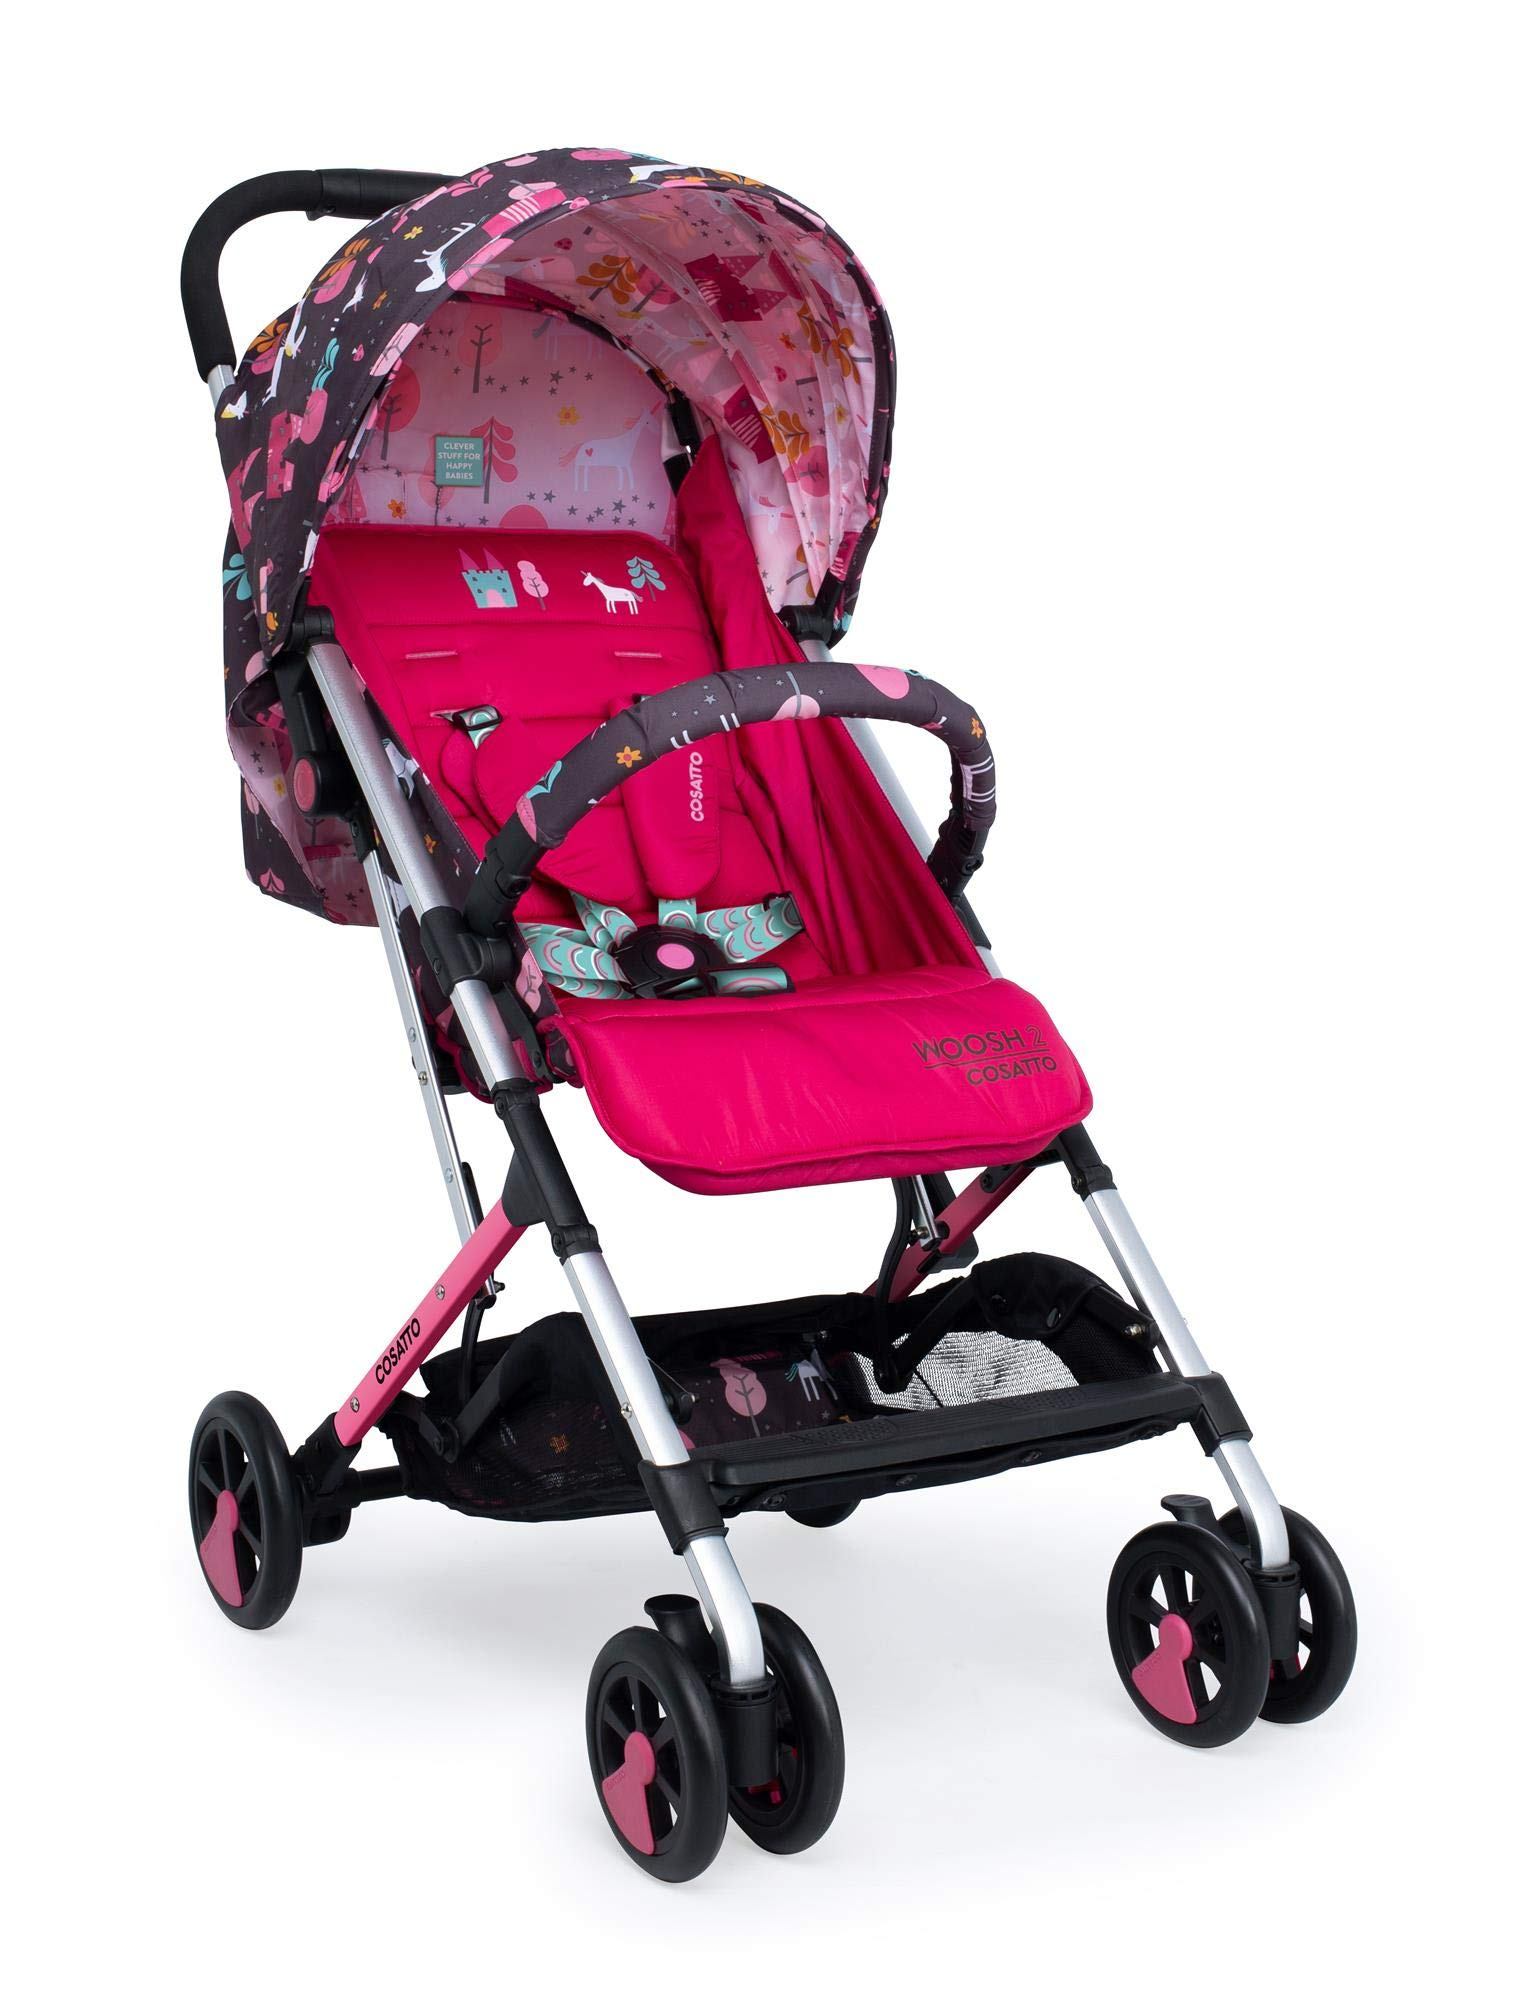 Cosatto CT4224 Woosh 2 Unicorn Land 7.2 kg Cosatto Suitable from birth to max weight of 25kg, lets your toddler use it for even longer Lightweight, sturdy aluminium frame New-born recline 3